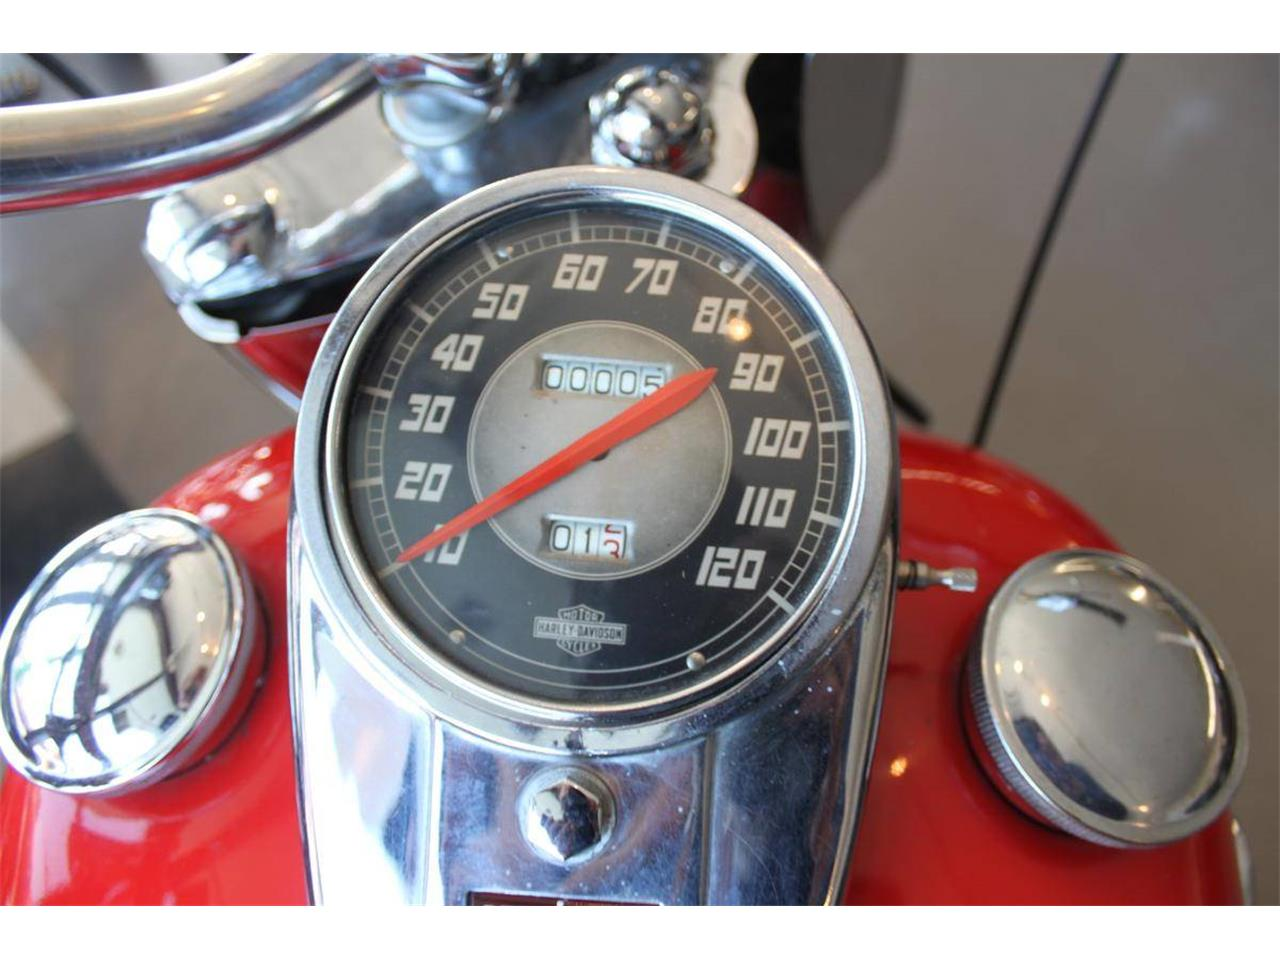 1950 Harley-Davidson Motorcycle for sale in Carnation, WA – photo 10